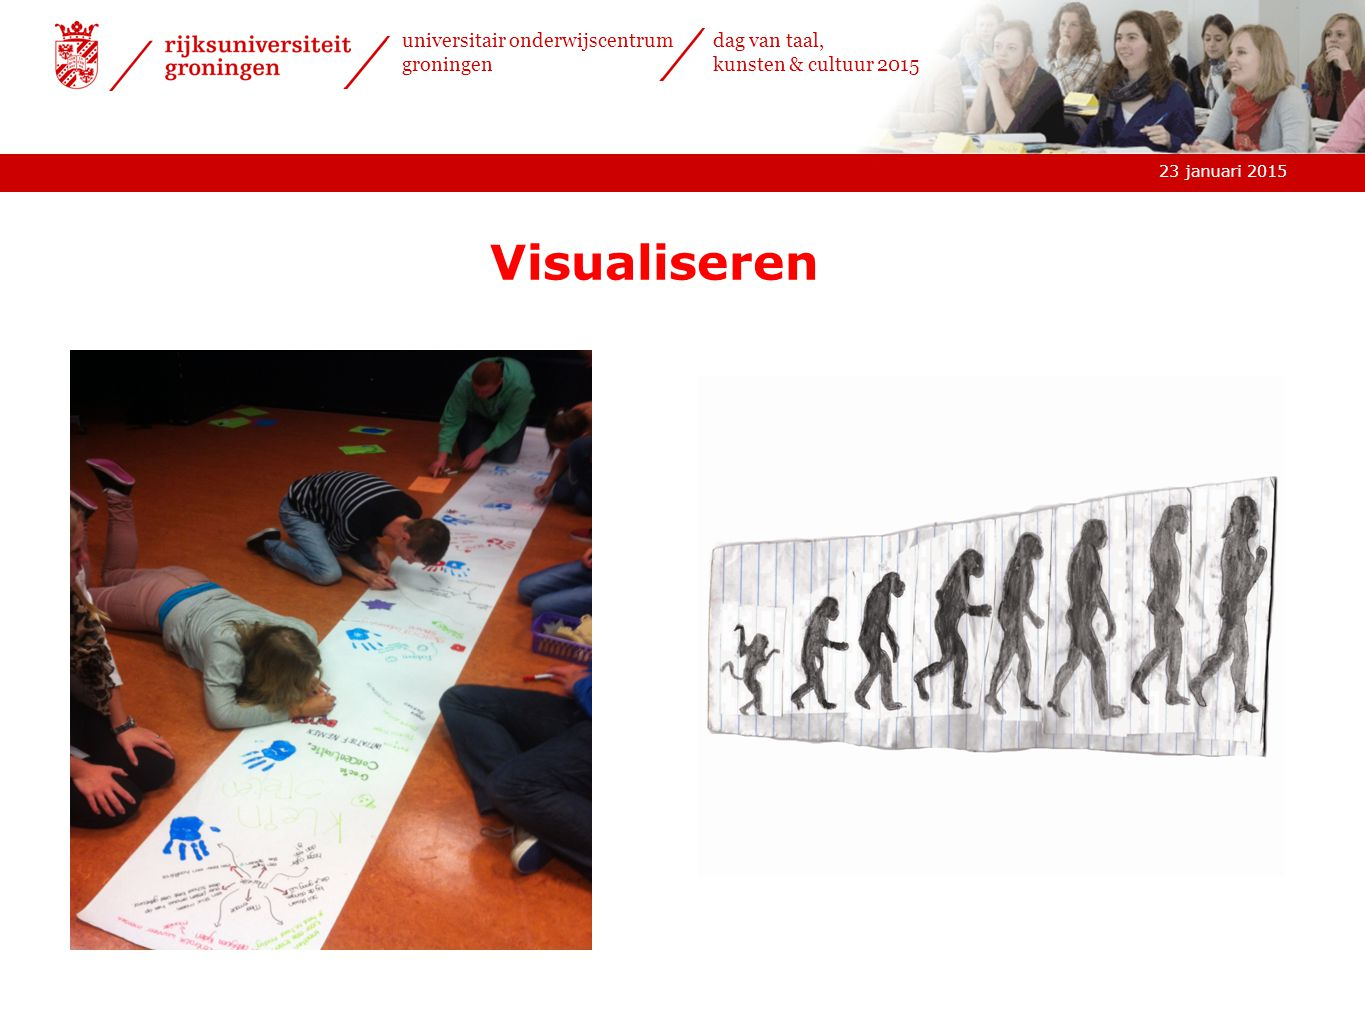 Visualiseren